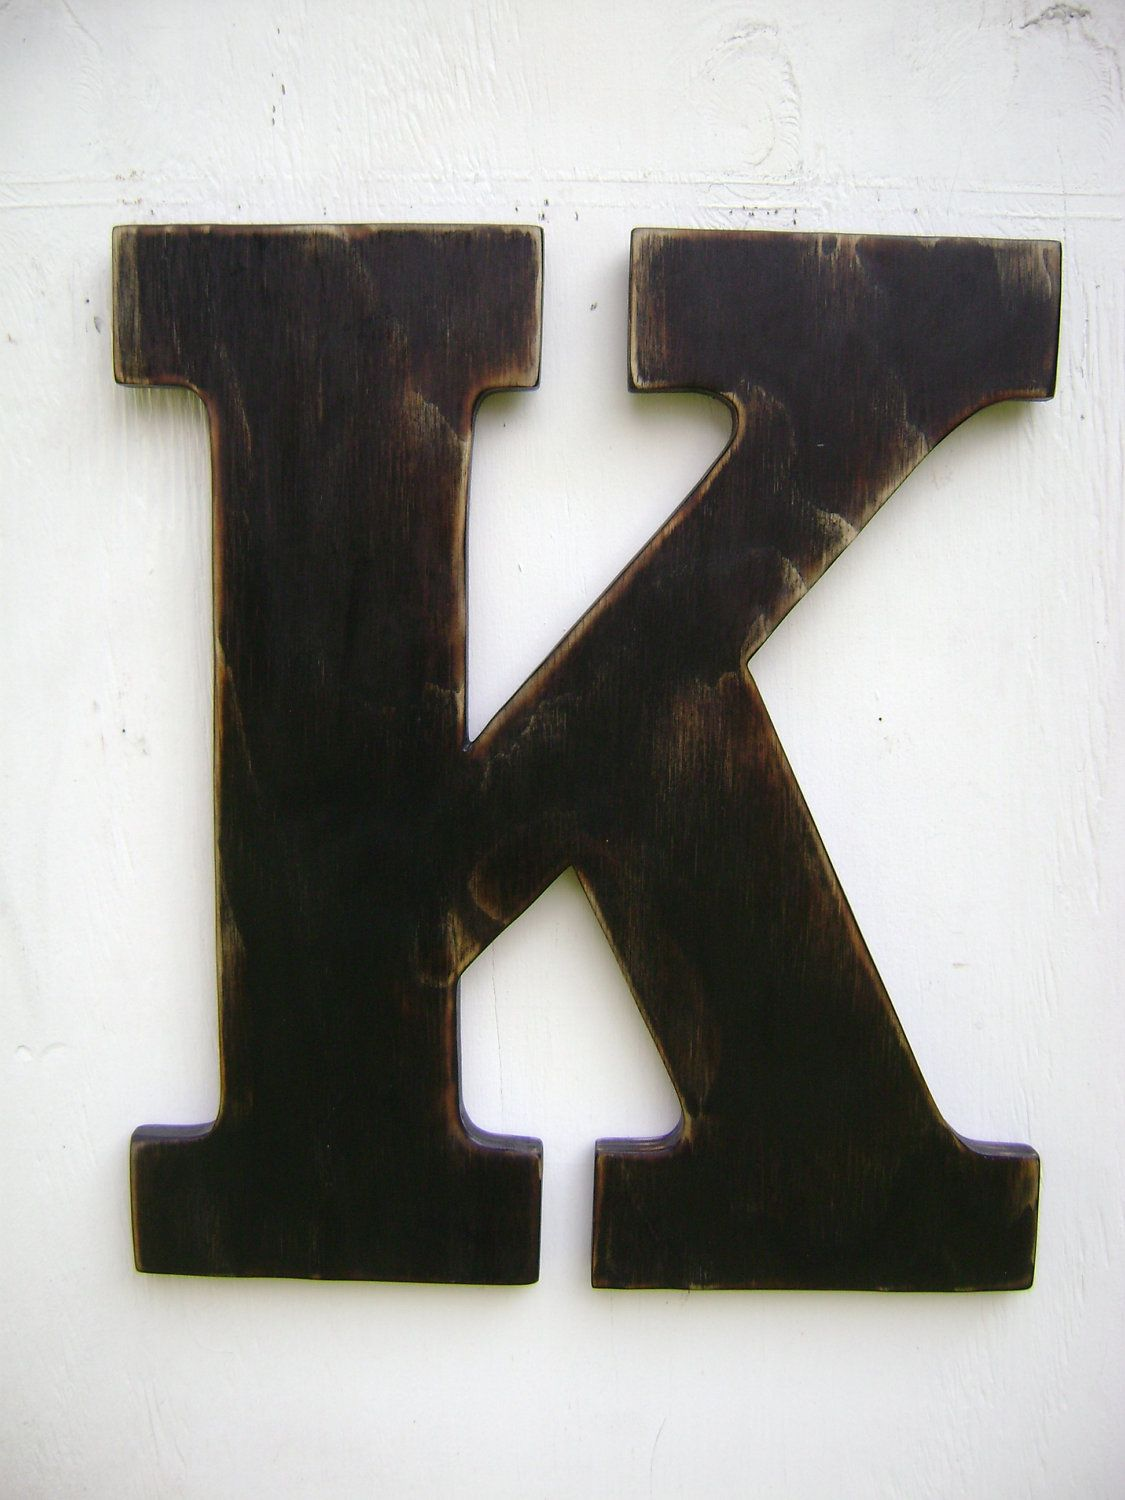 Large Wood Letter K Shabby Chic Wall Hanging Decor 18 Tall 52 00 Via Etsy